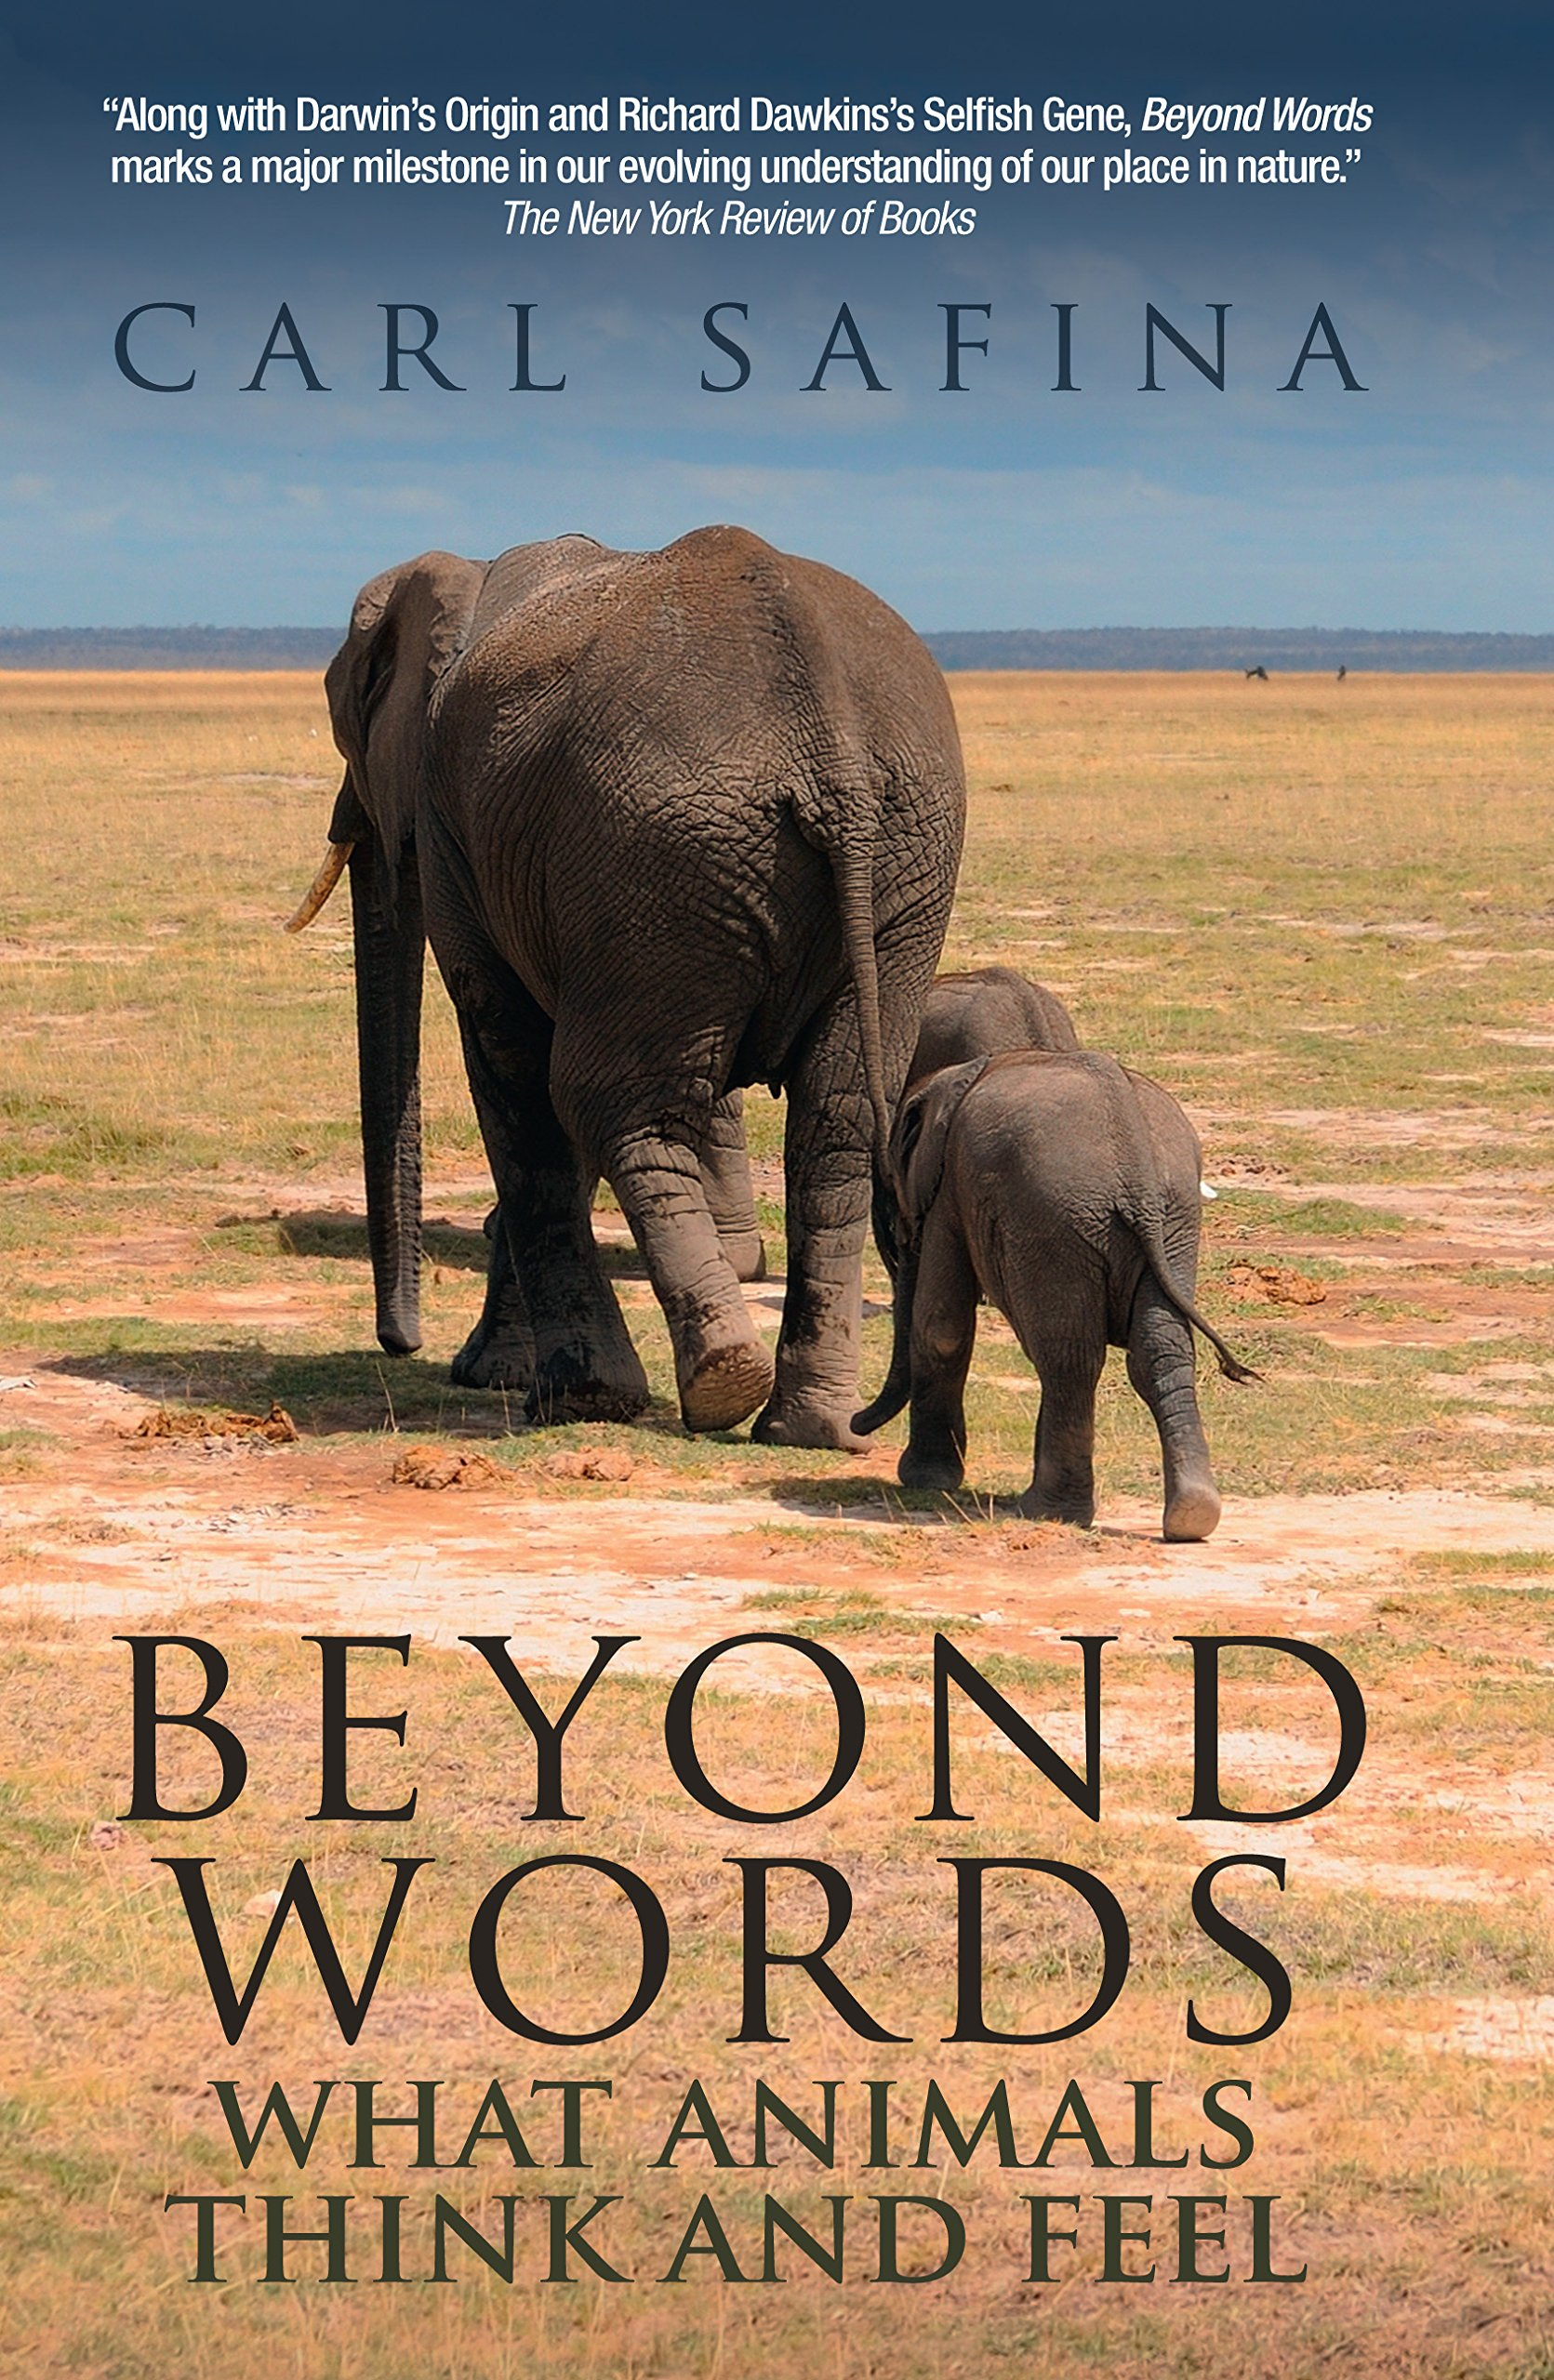 Beyond Words (book cover)